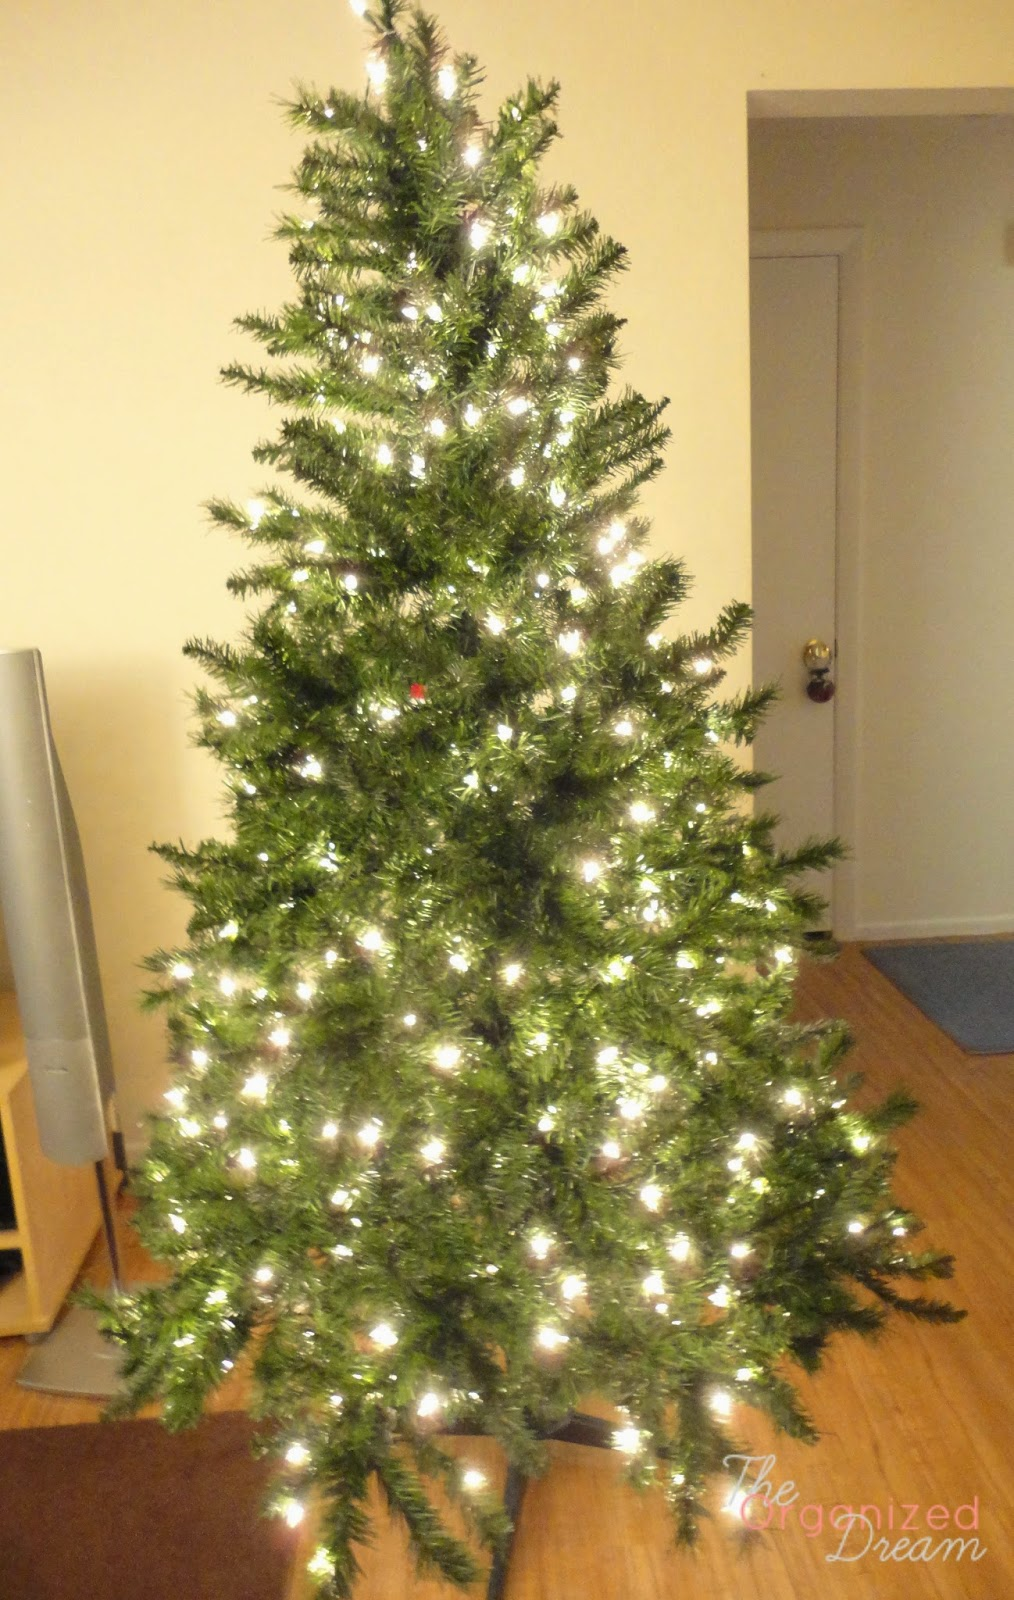 Christmas Tree With Mesh.How To Decorate A Christmas Tree With Wide Mesh Ribbon The